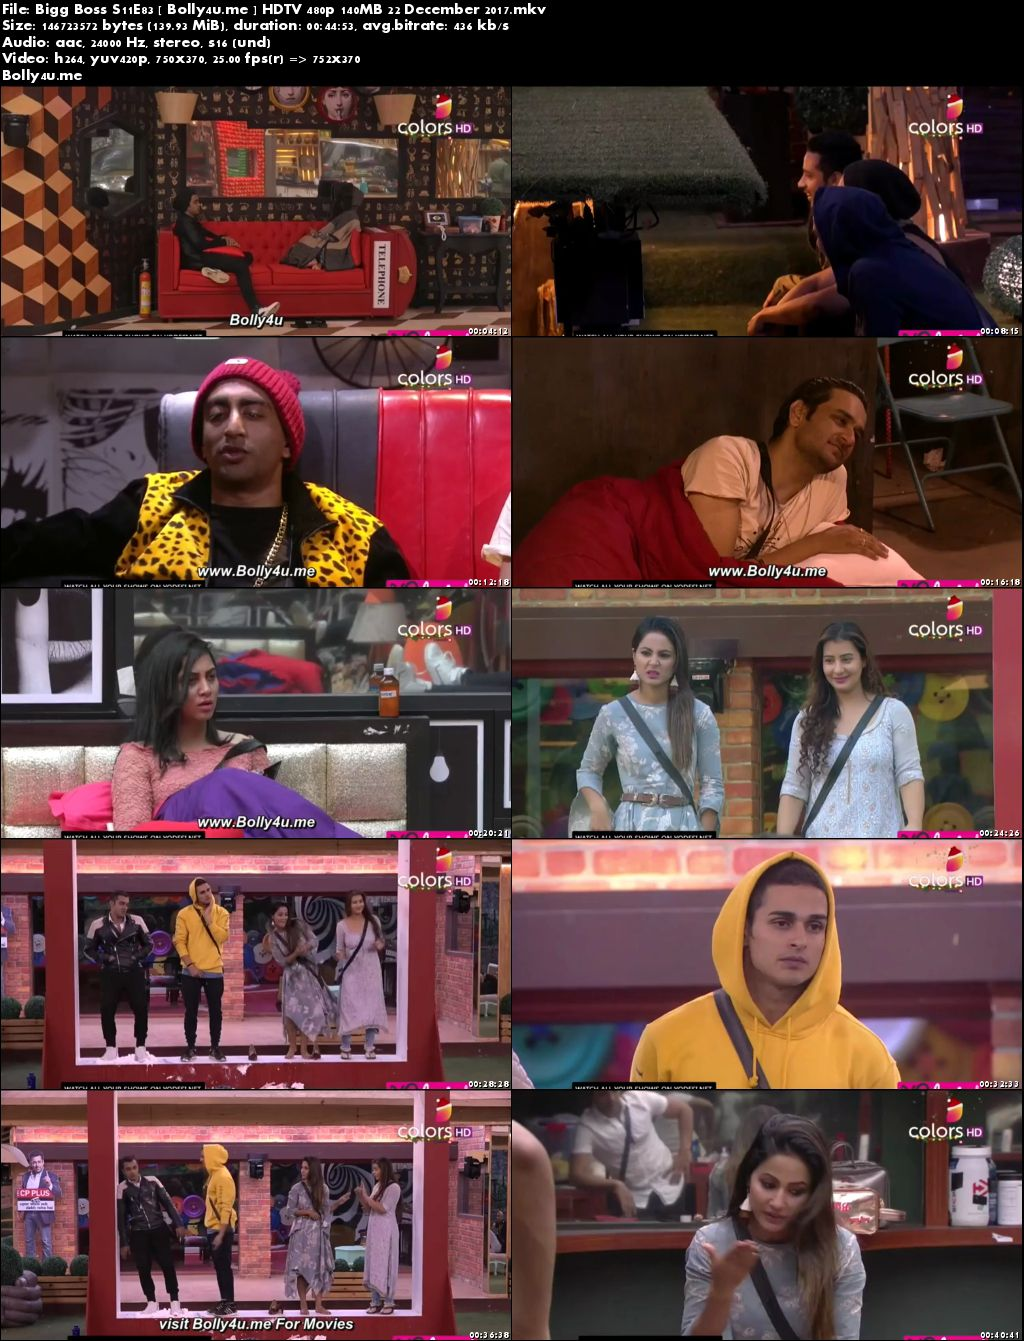 Bigg Boss S11E83 HDTV 480p 140MB 22 Dec 2017 Download